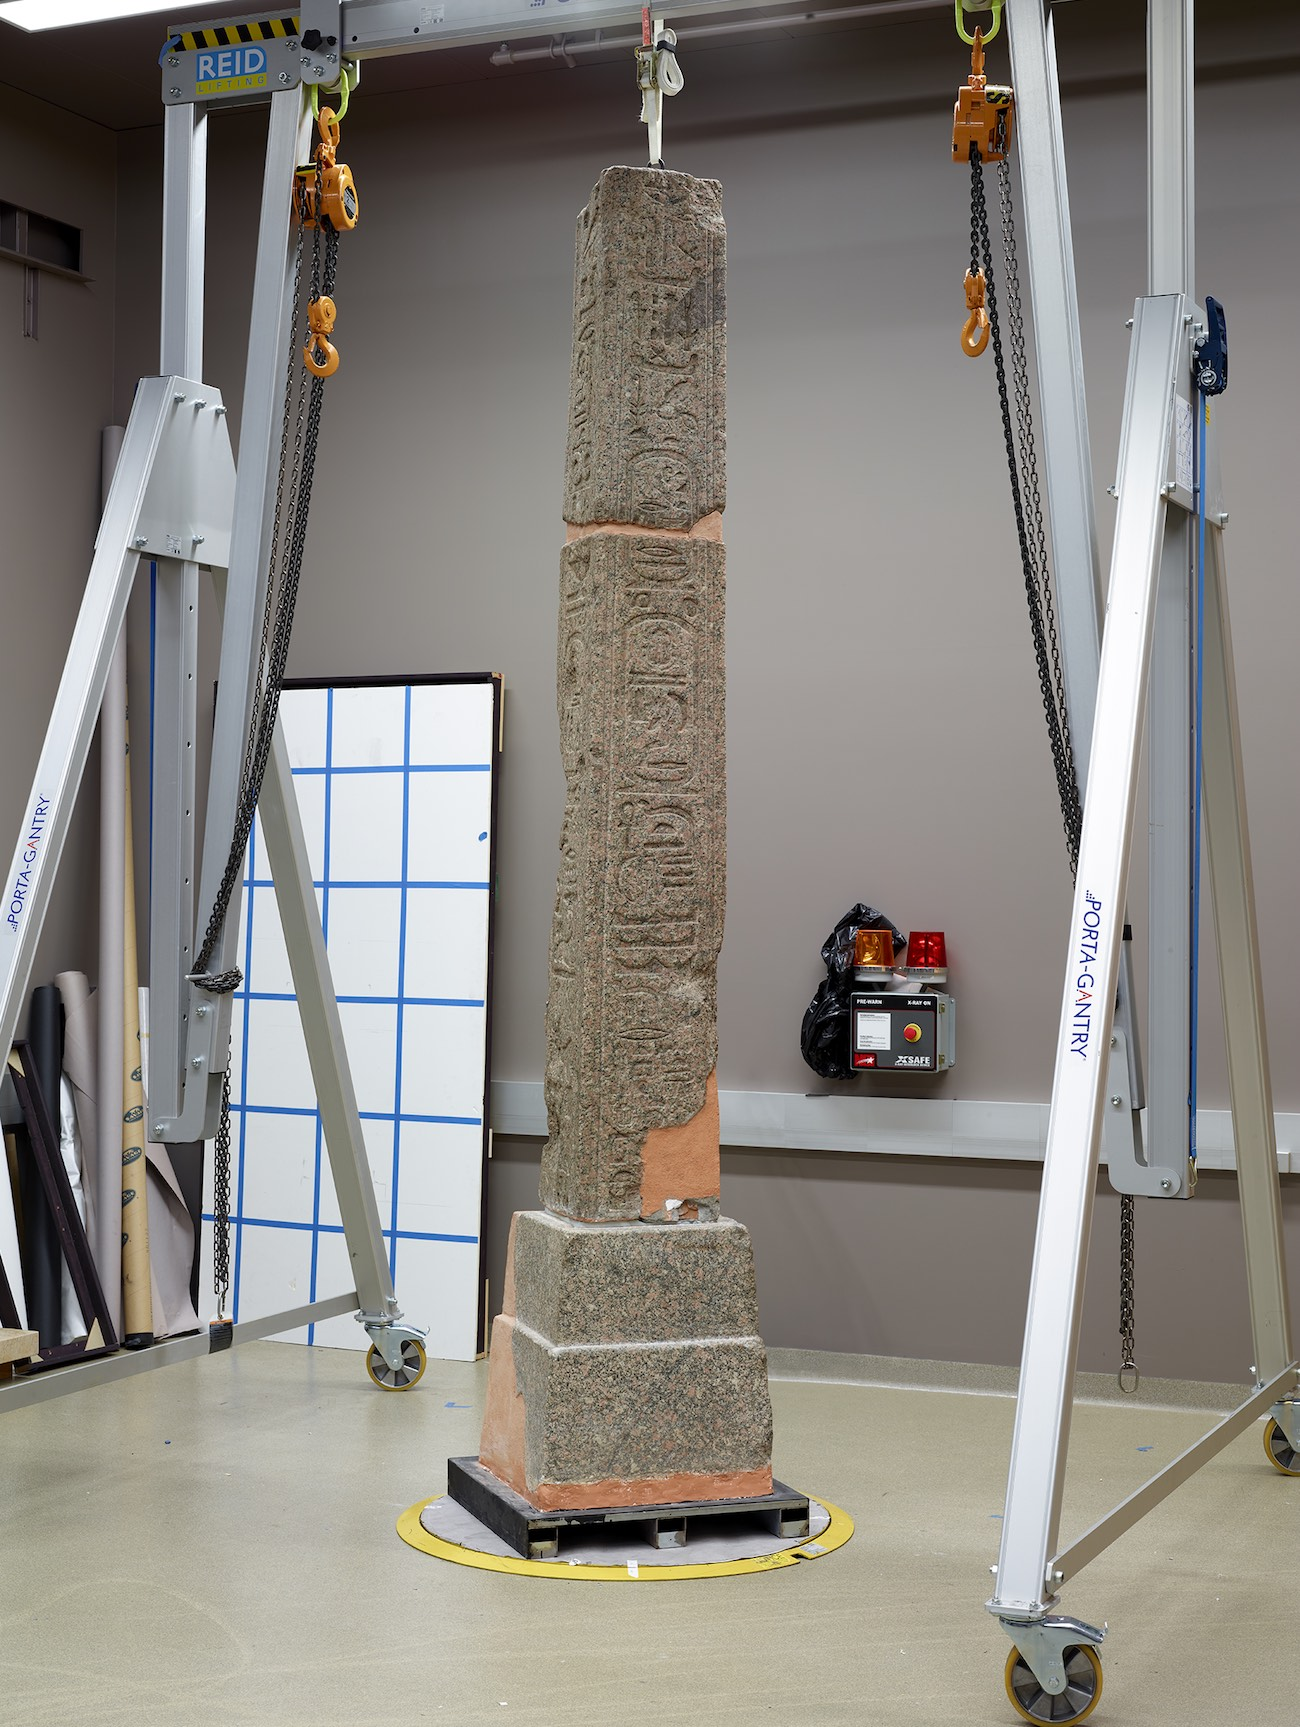 A large pink-brown obelisk stands in a conservation lab, held up by conservation rigging